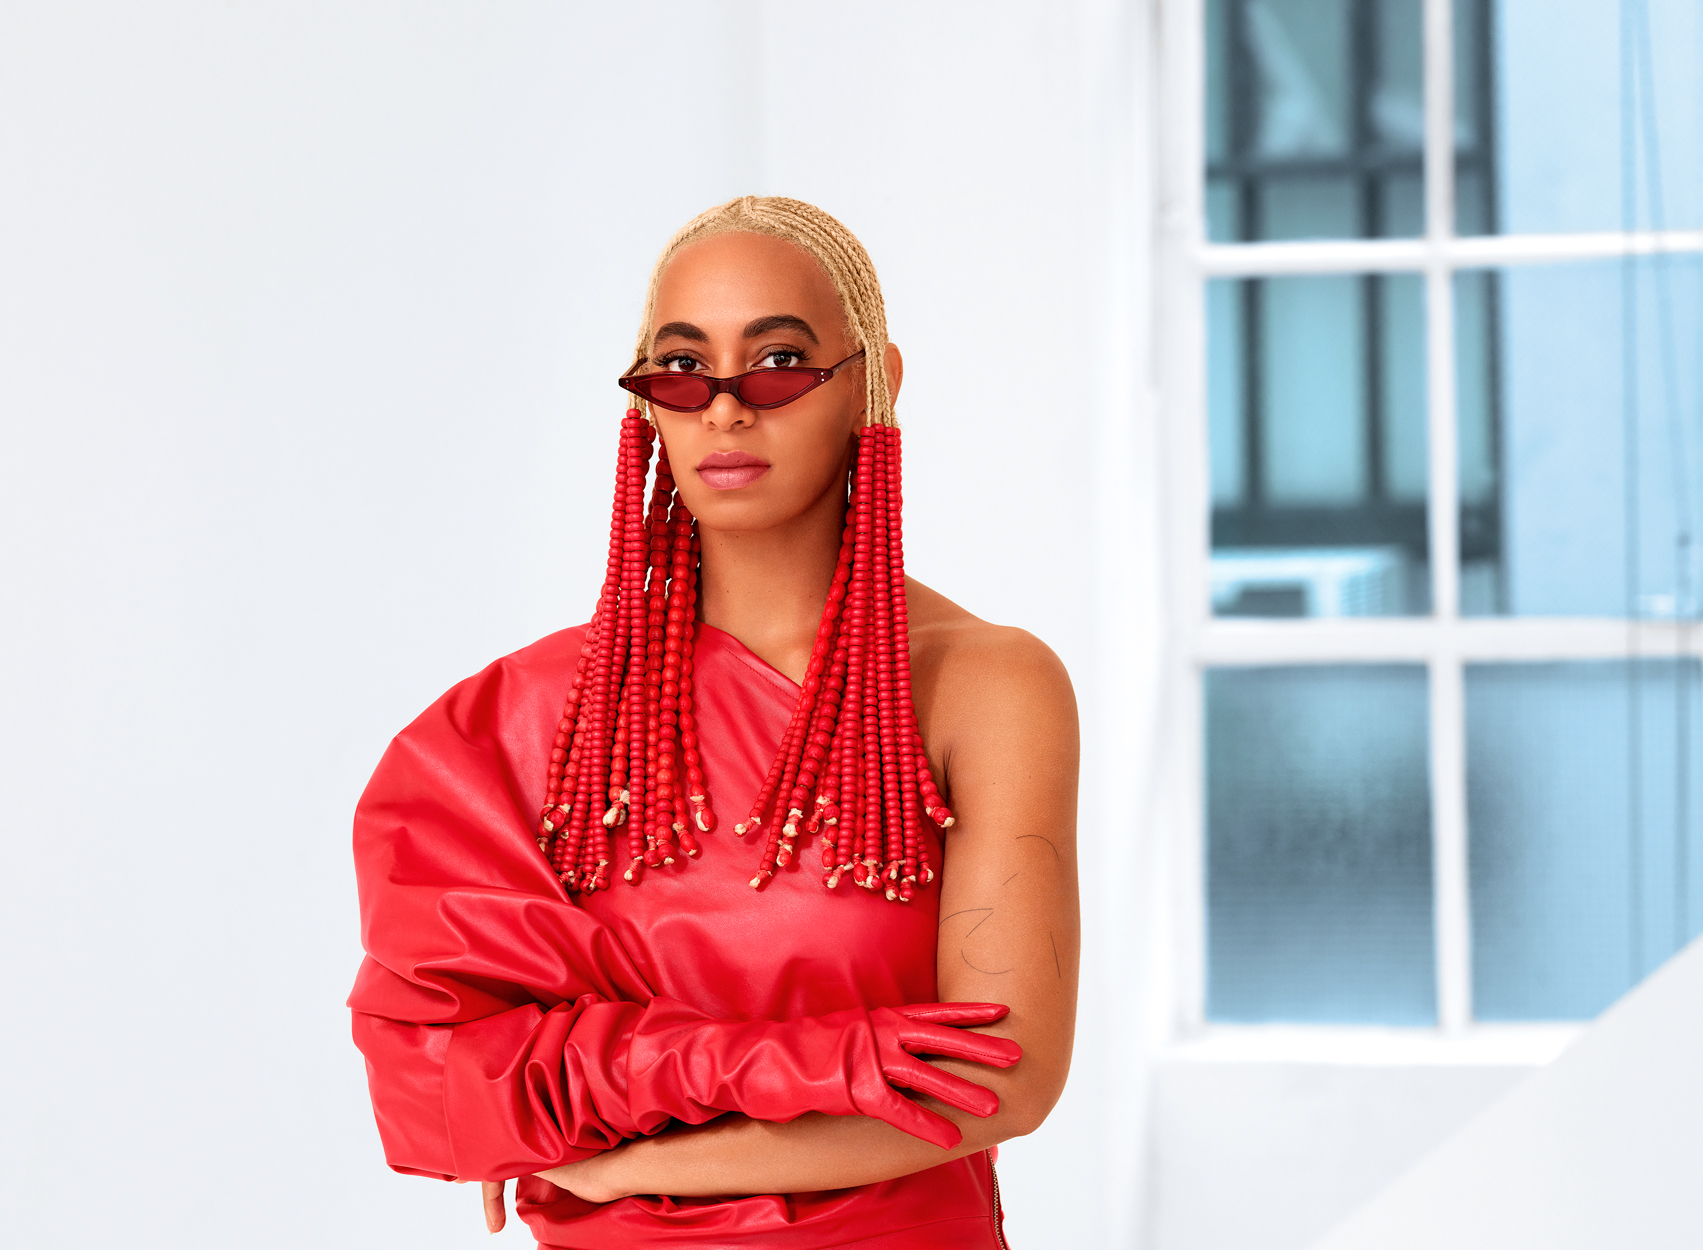 Solange Knowles' Performance Art Future — SURFACE